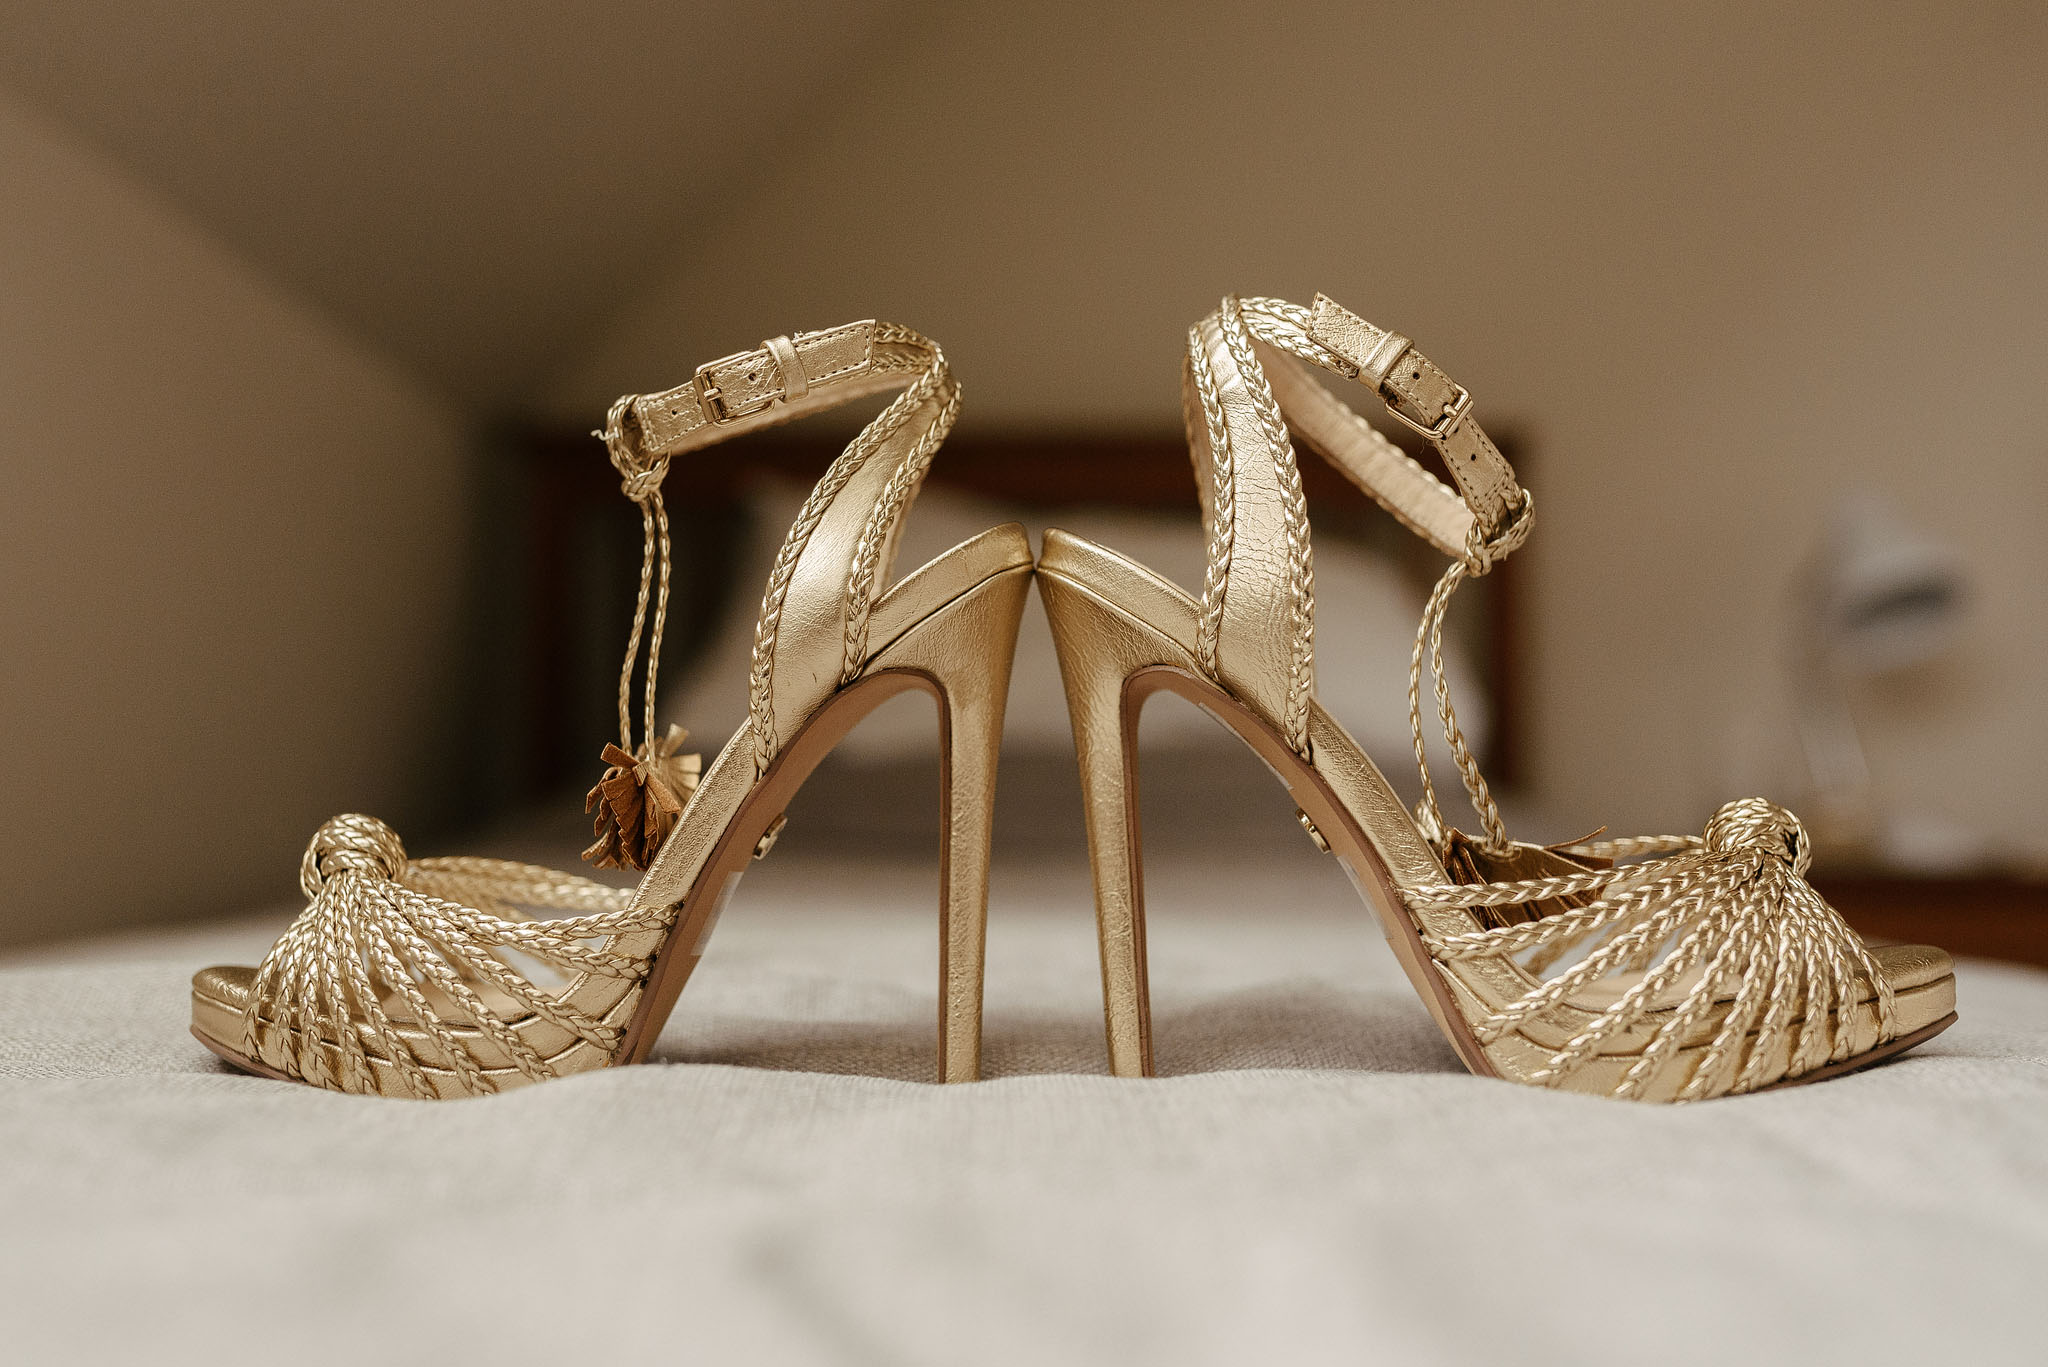 Golden wedding shoes for Quail Island, Christchurch wedding. Photos by Emma Brittenden.